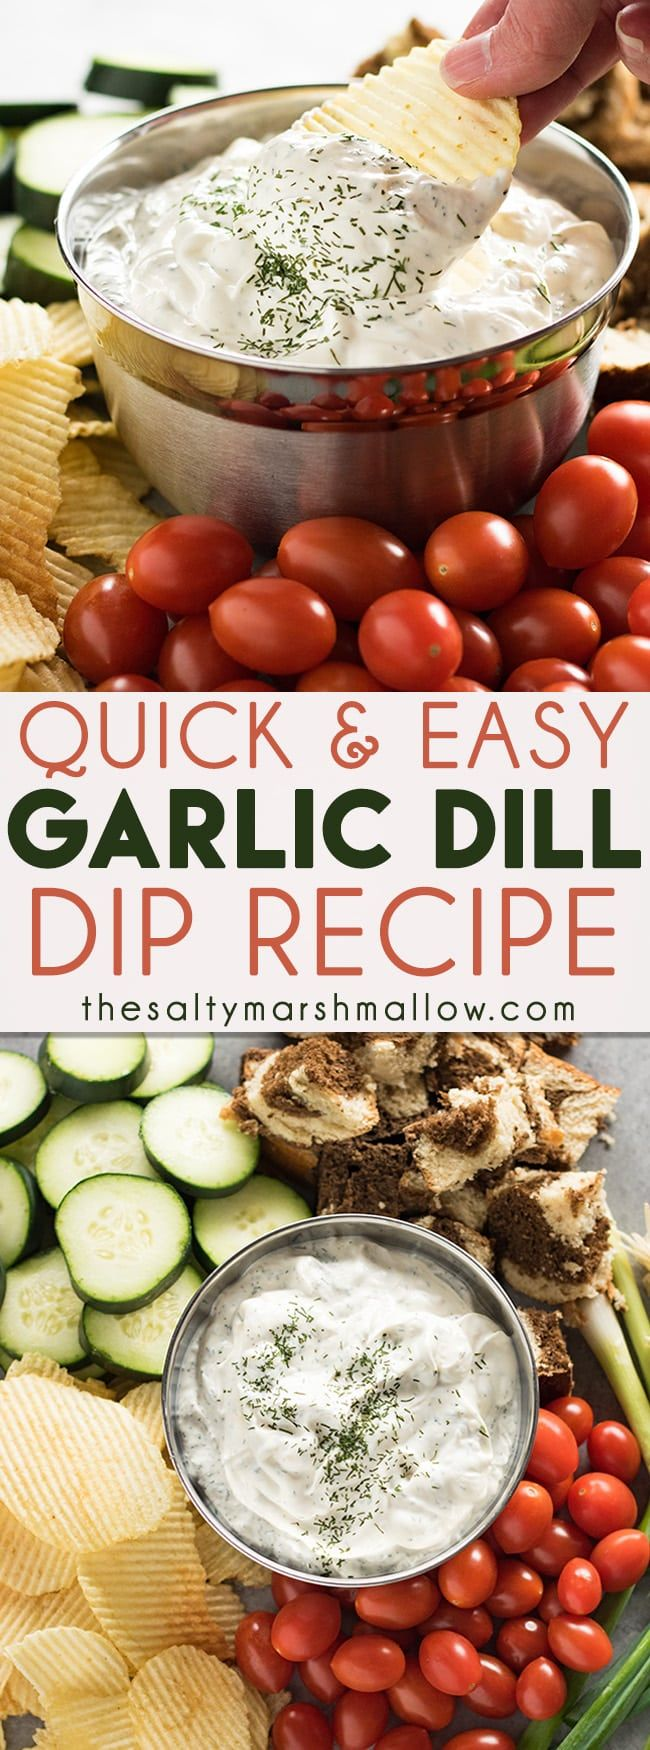 This easy dill dip is creamy and flavorful, and ready in minutes! Dill dipis great served with your favorite fresh chopped vegetables, chips, crackers, and toasted bread! #dip #dilldip #dill #thesaltymarshmallow #snacks